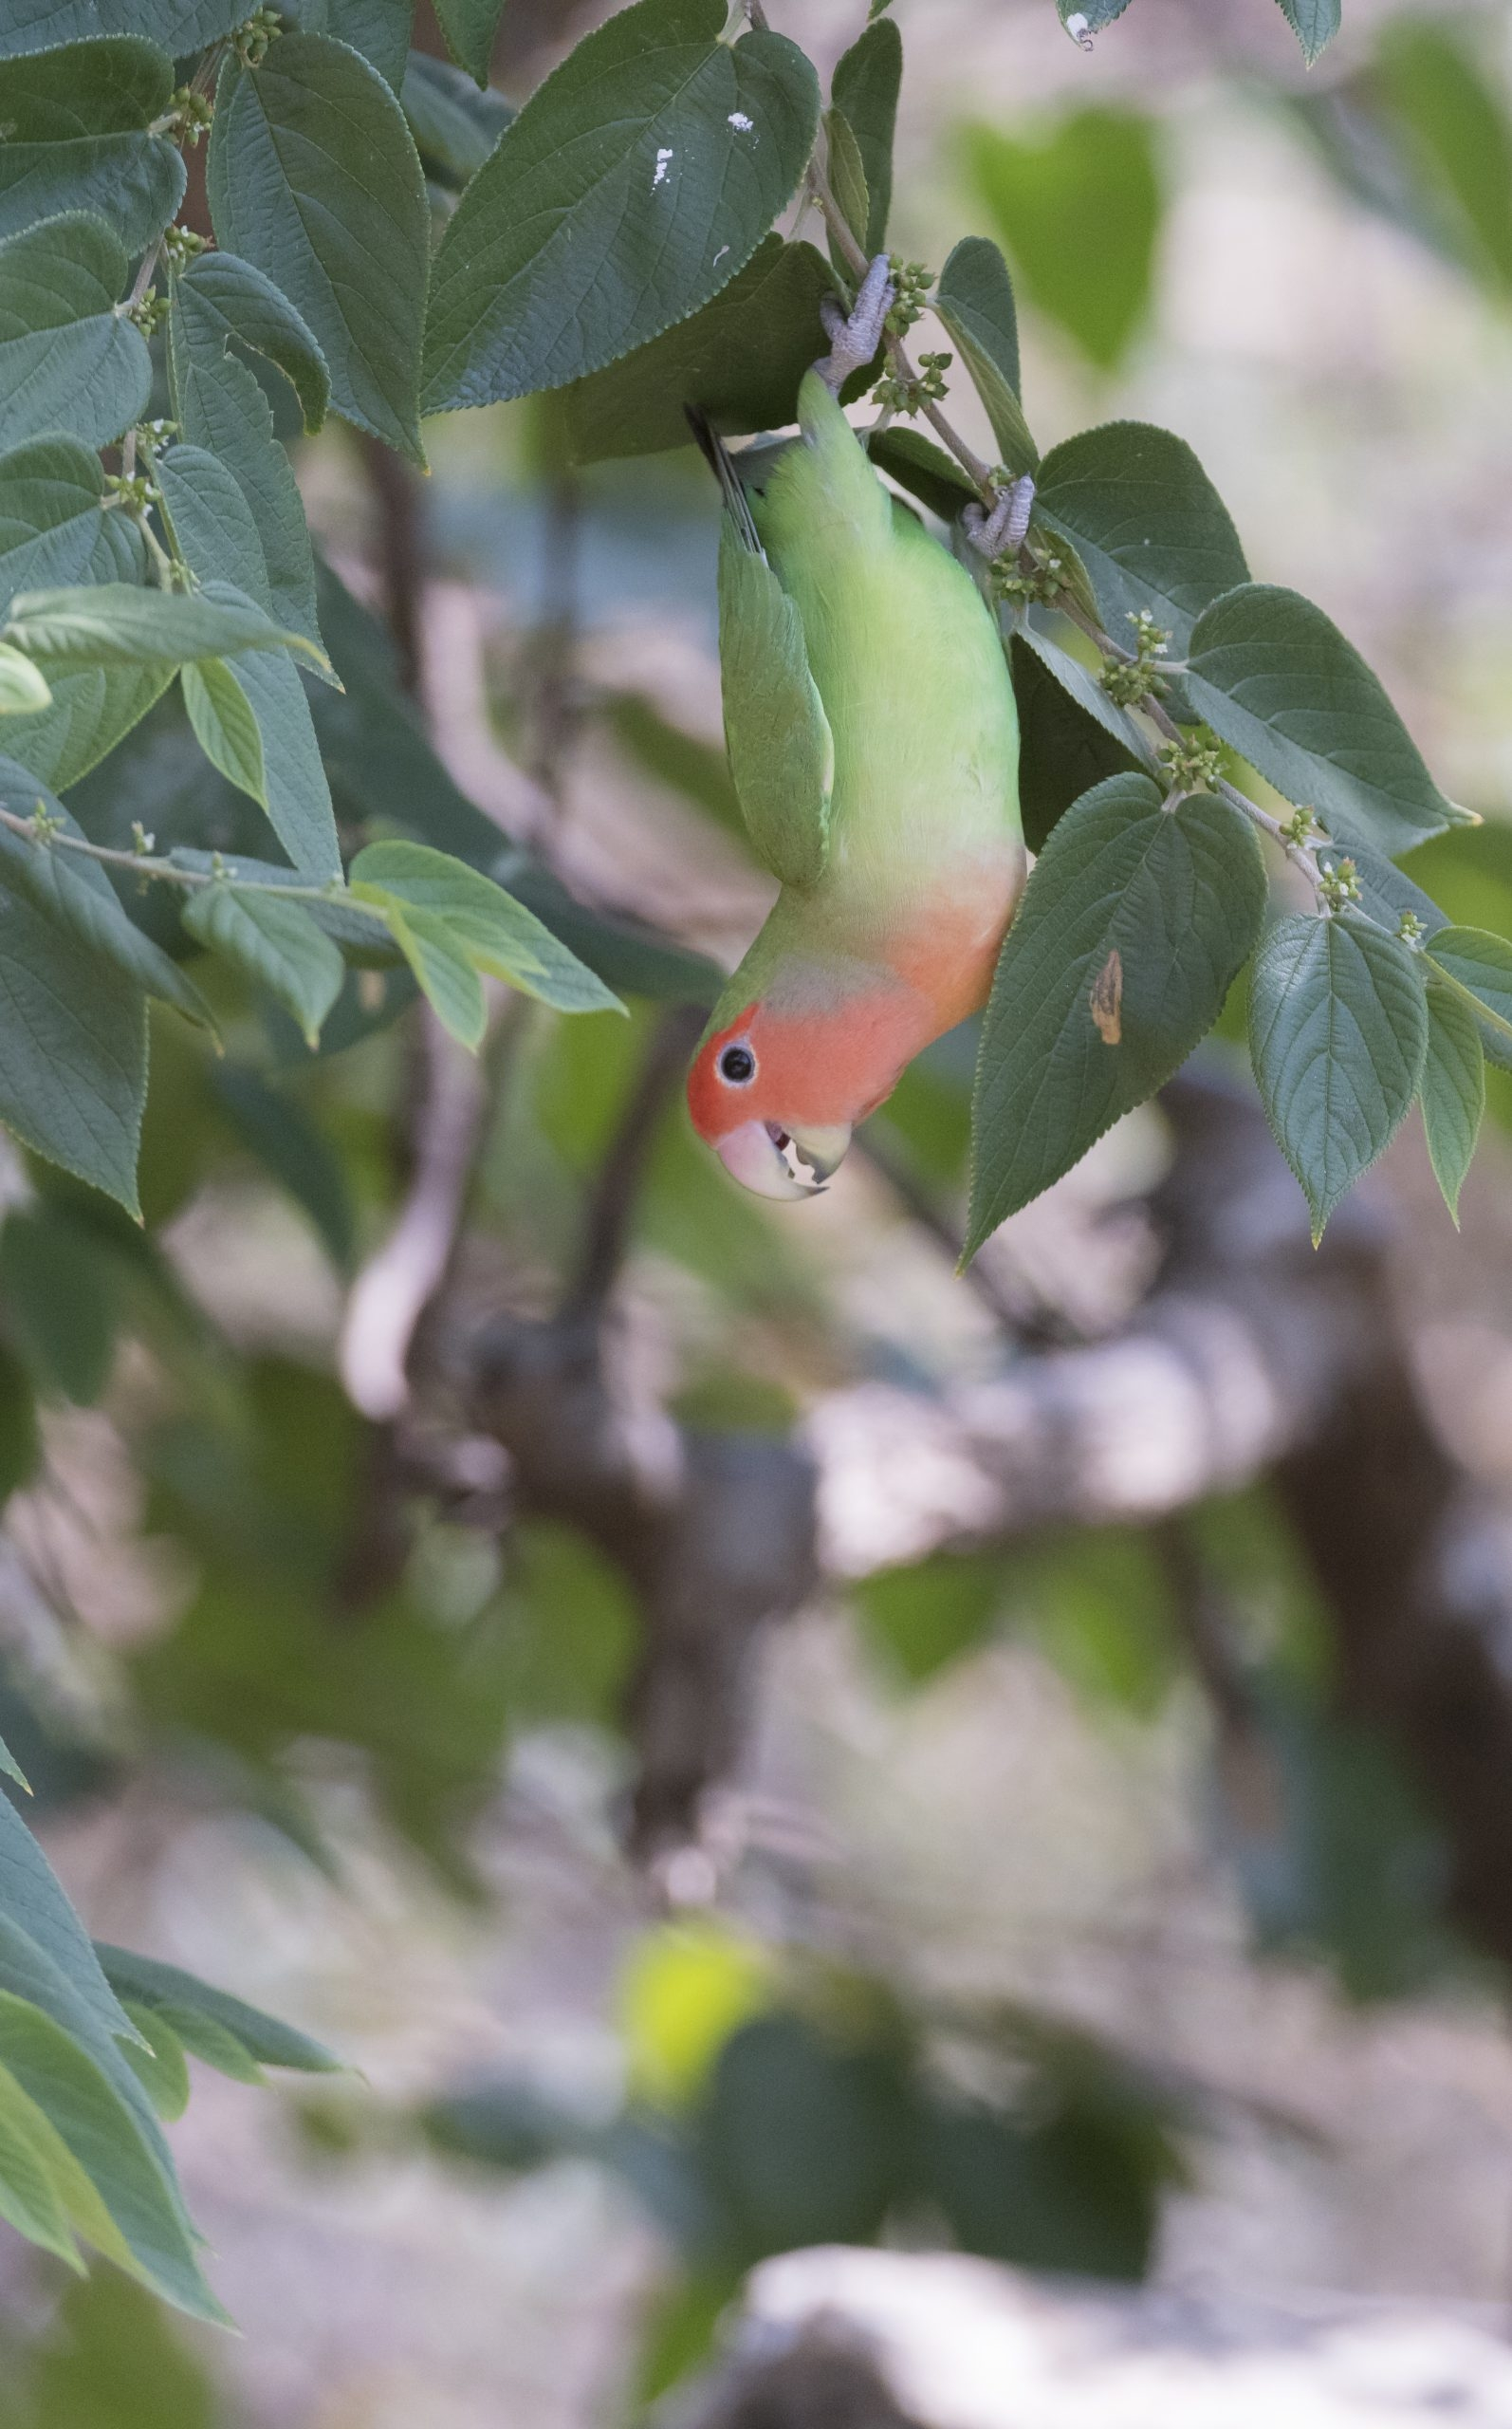 Our day tour to Brandberg offers the chance to see many desert-adapted mammals, reptiles, plants, insects and birds. It also offers wonderful scenery and great photographic opportunities. The Rosy-faced Lovebird is one of the many bird species that can be seen on this tour.